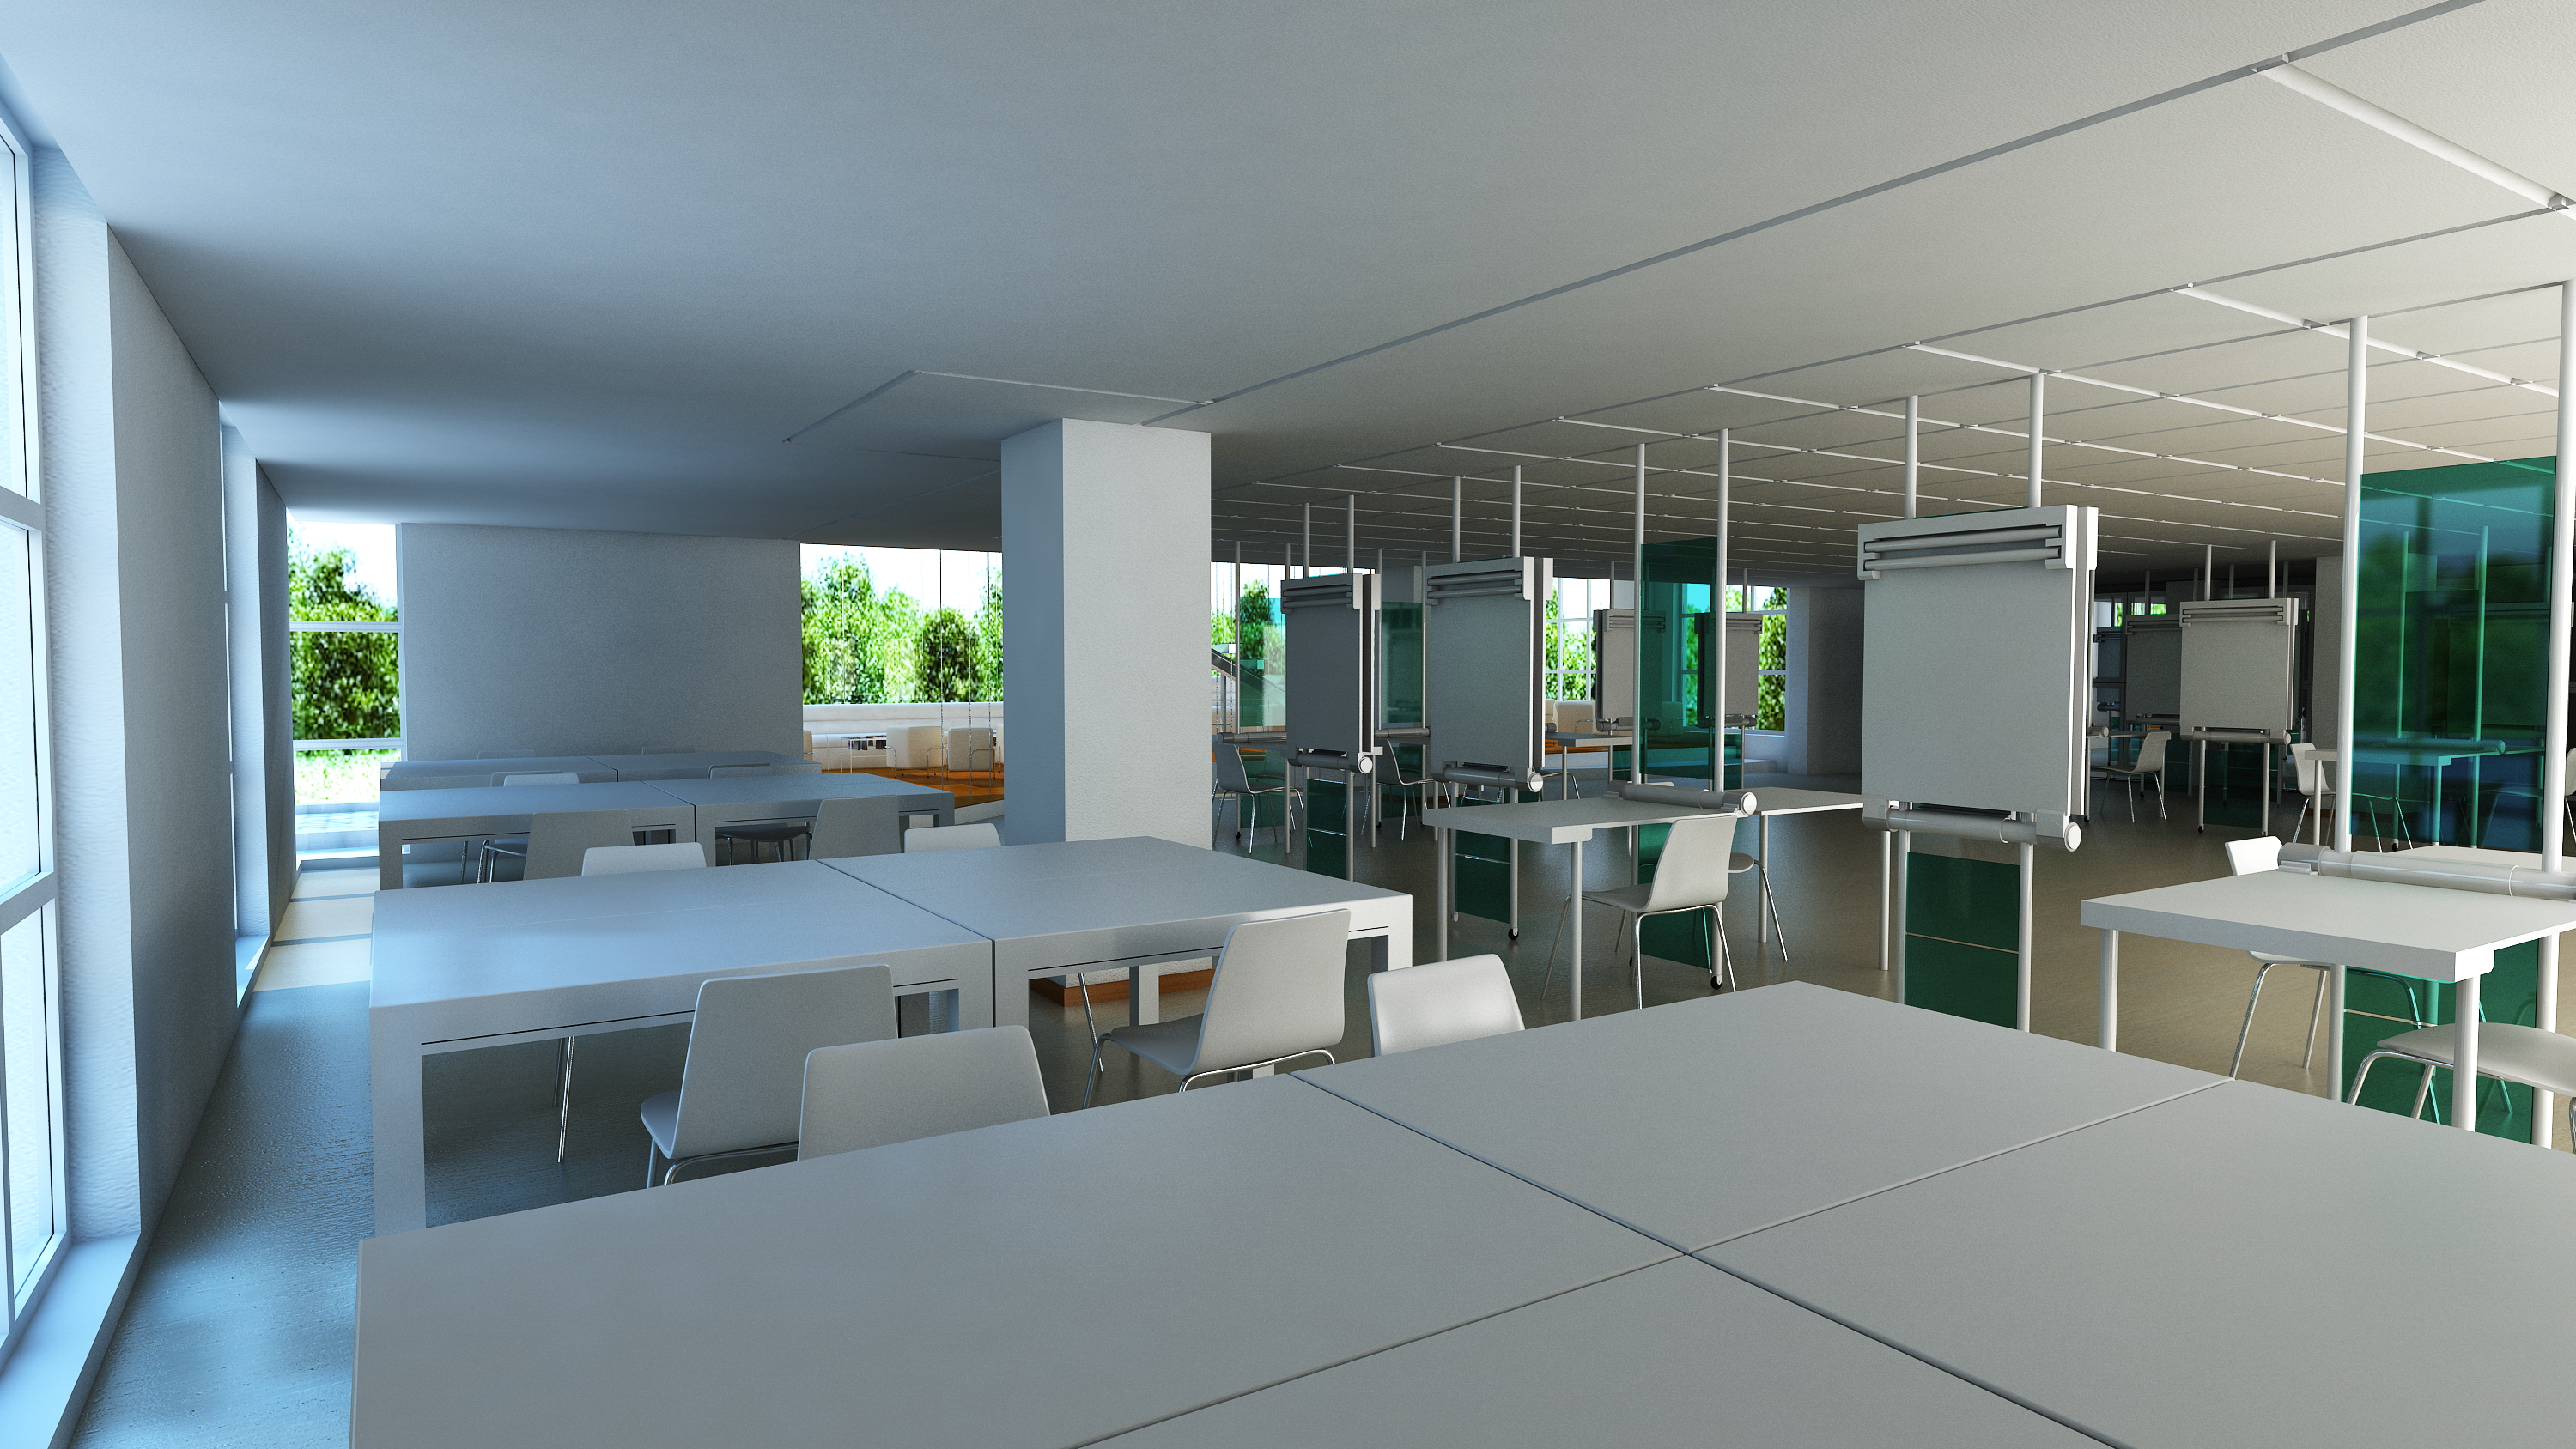 architecture studio interior rendering